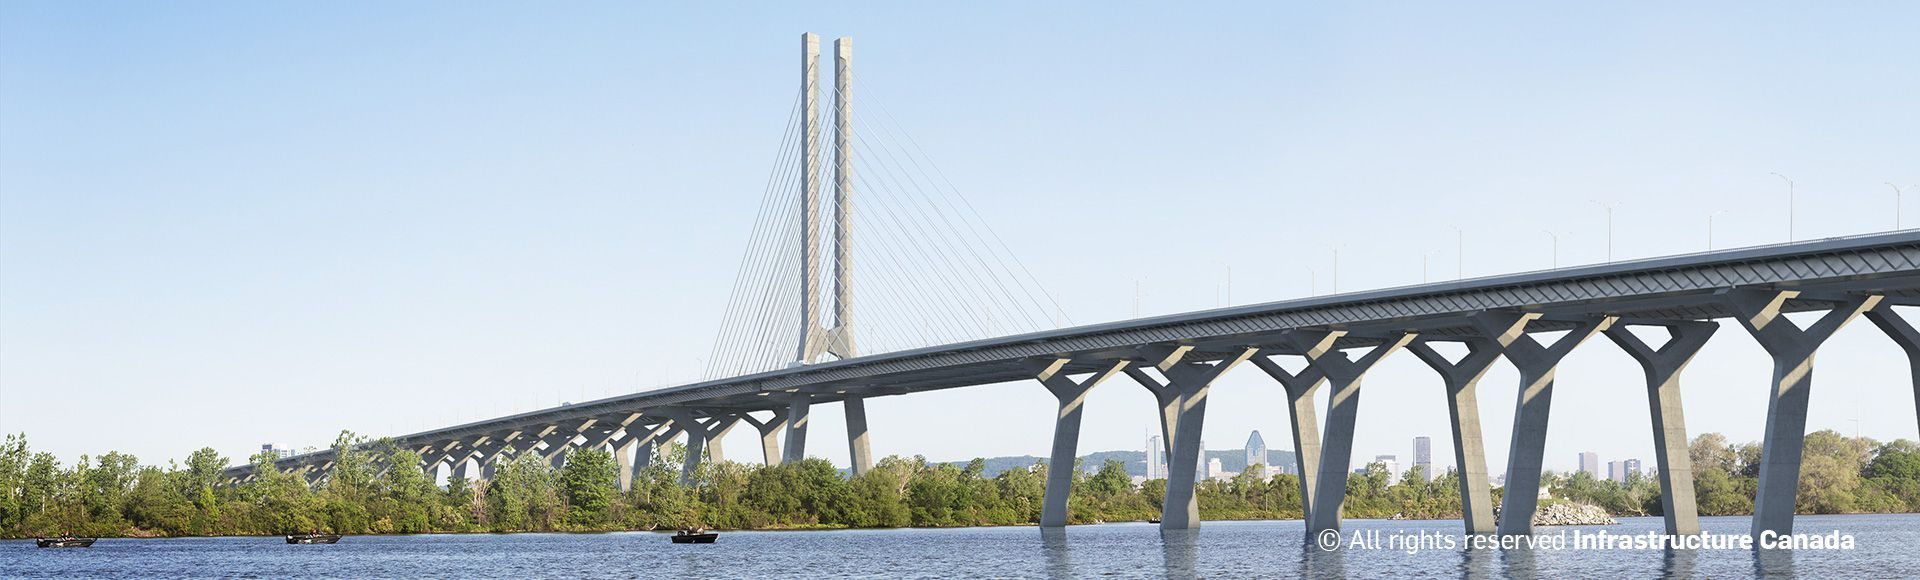 new-samuel-de-champlain-bridge-header-en